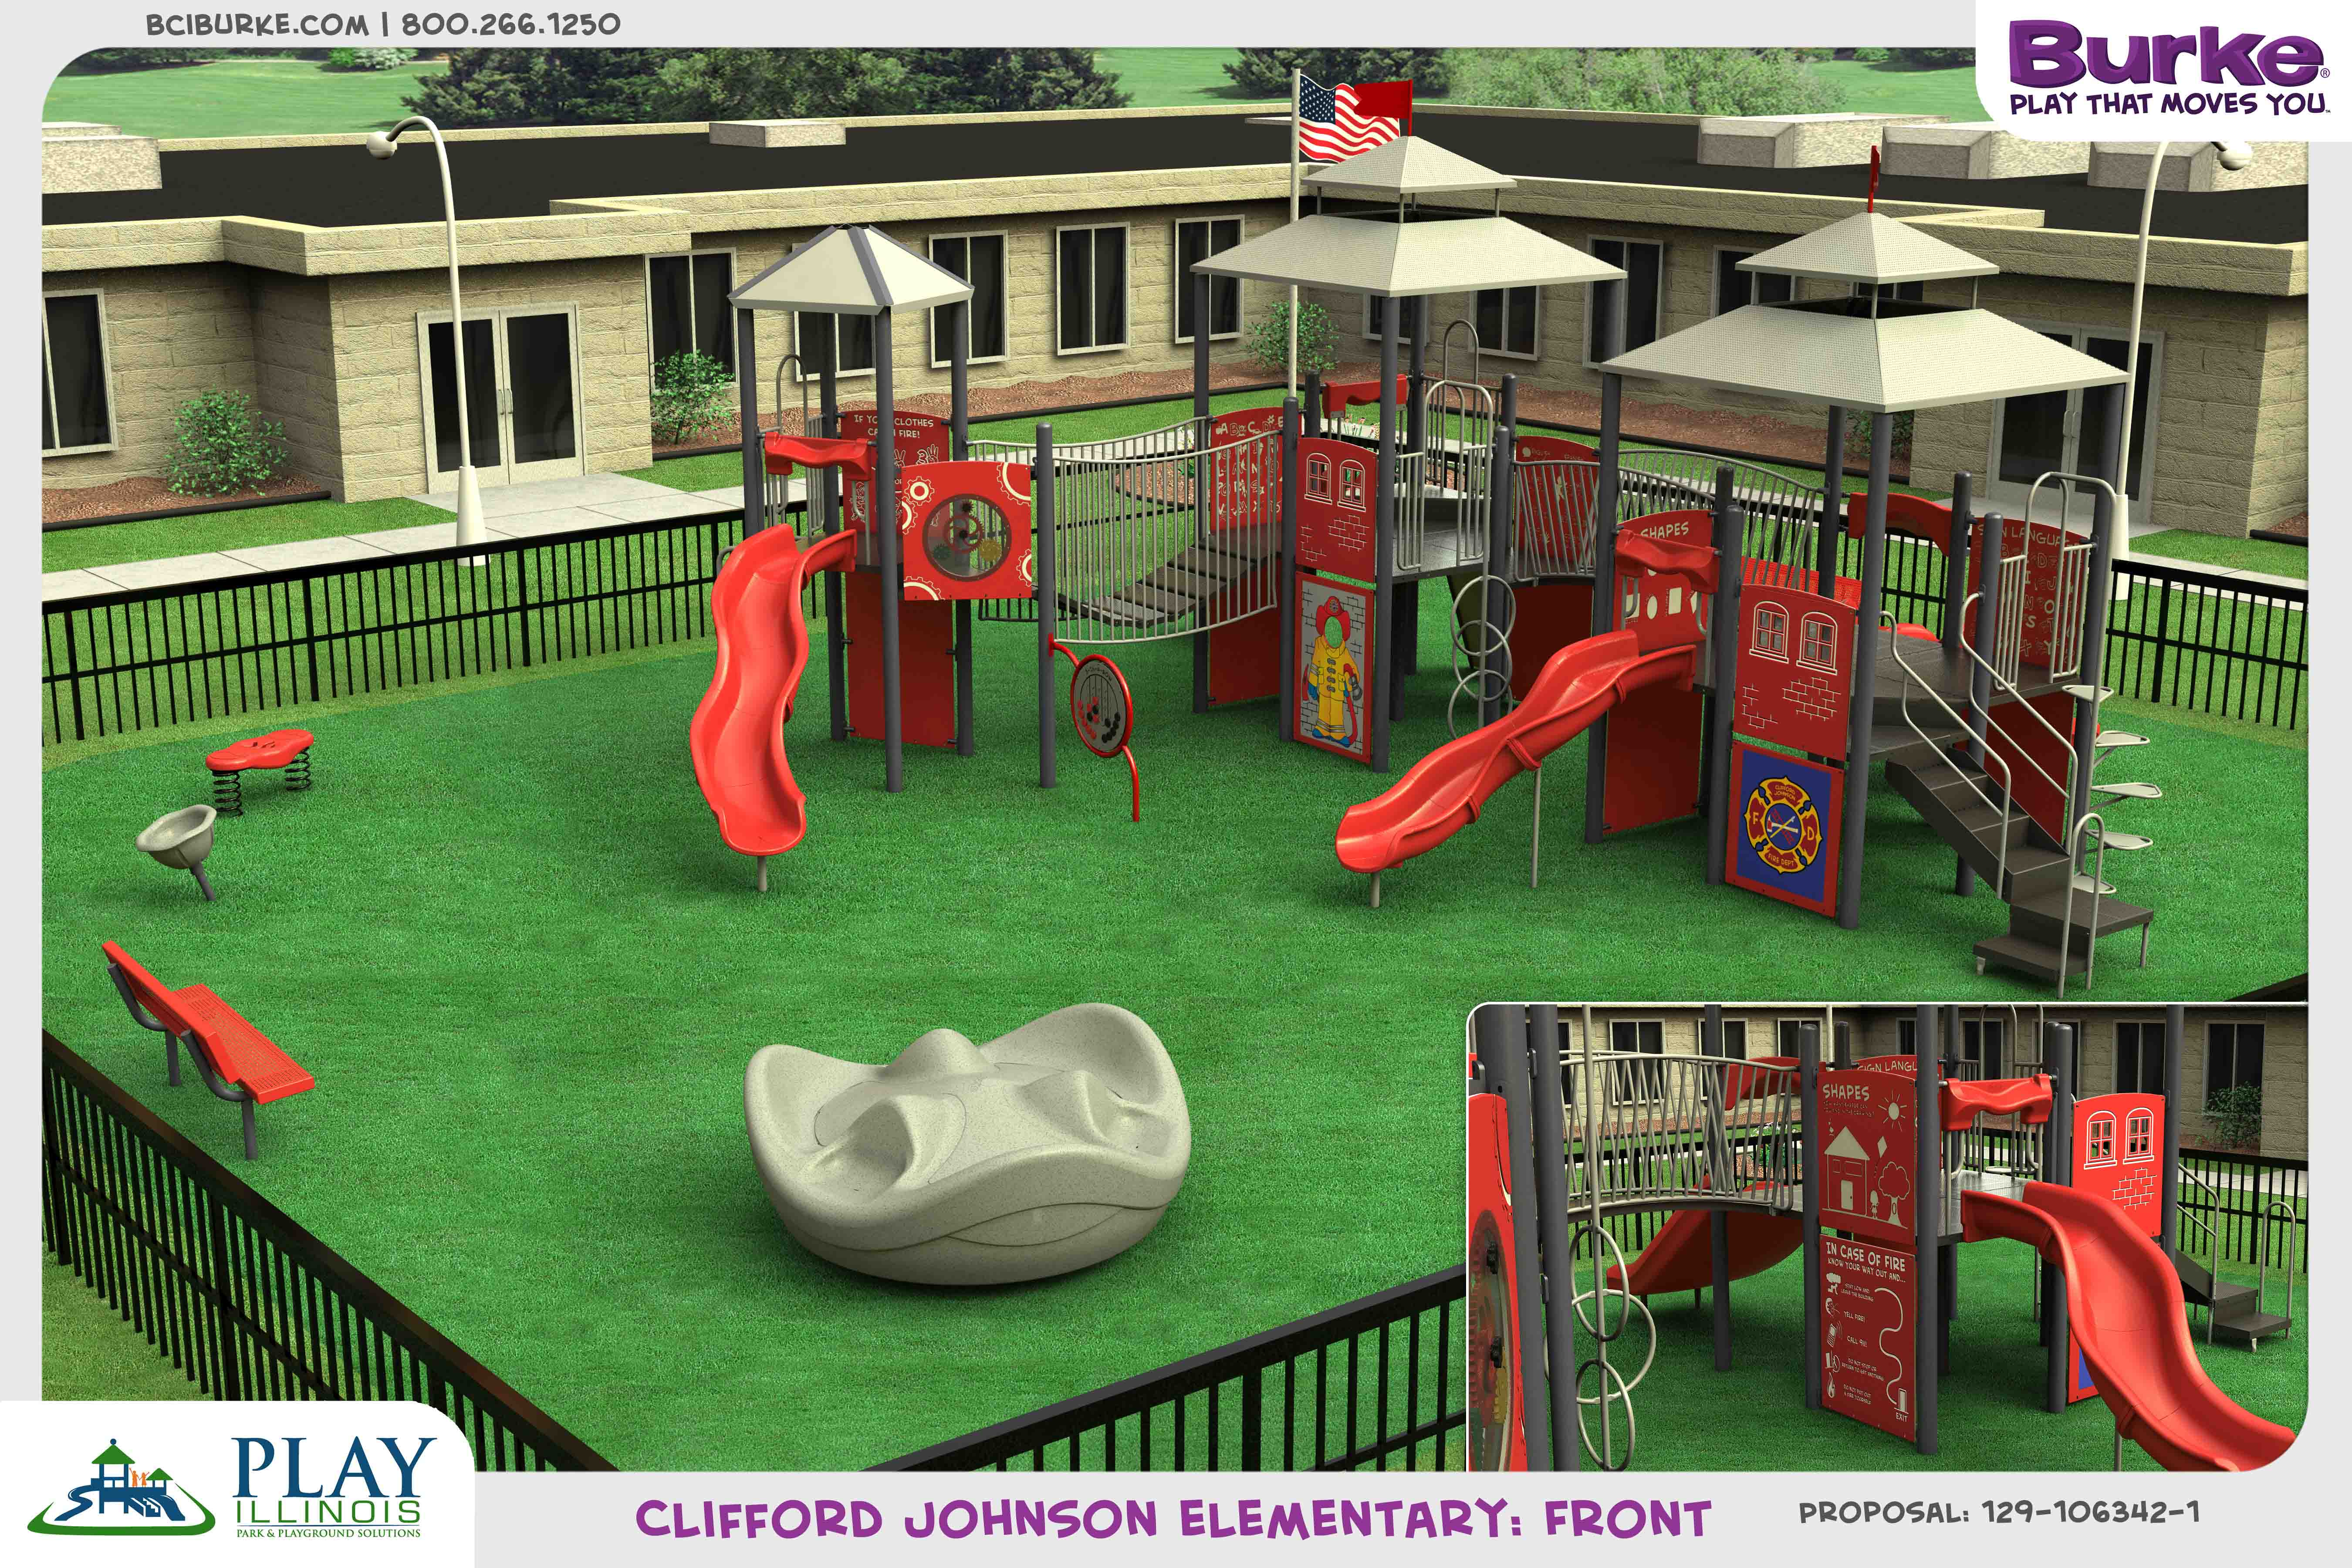 CliffordJohnsonFront dream build play experience accessible playgrounds